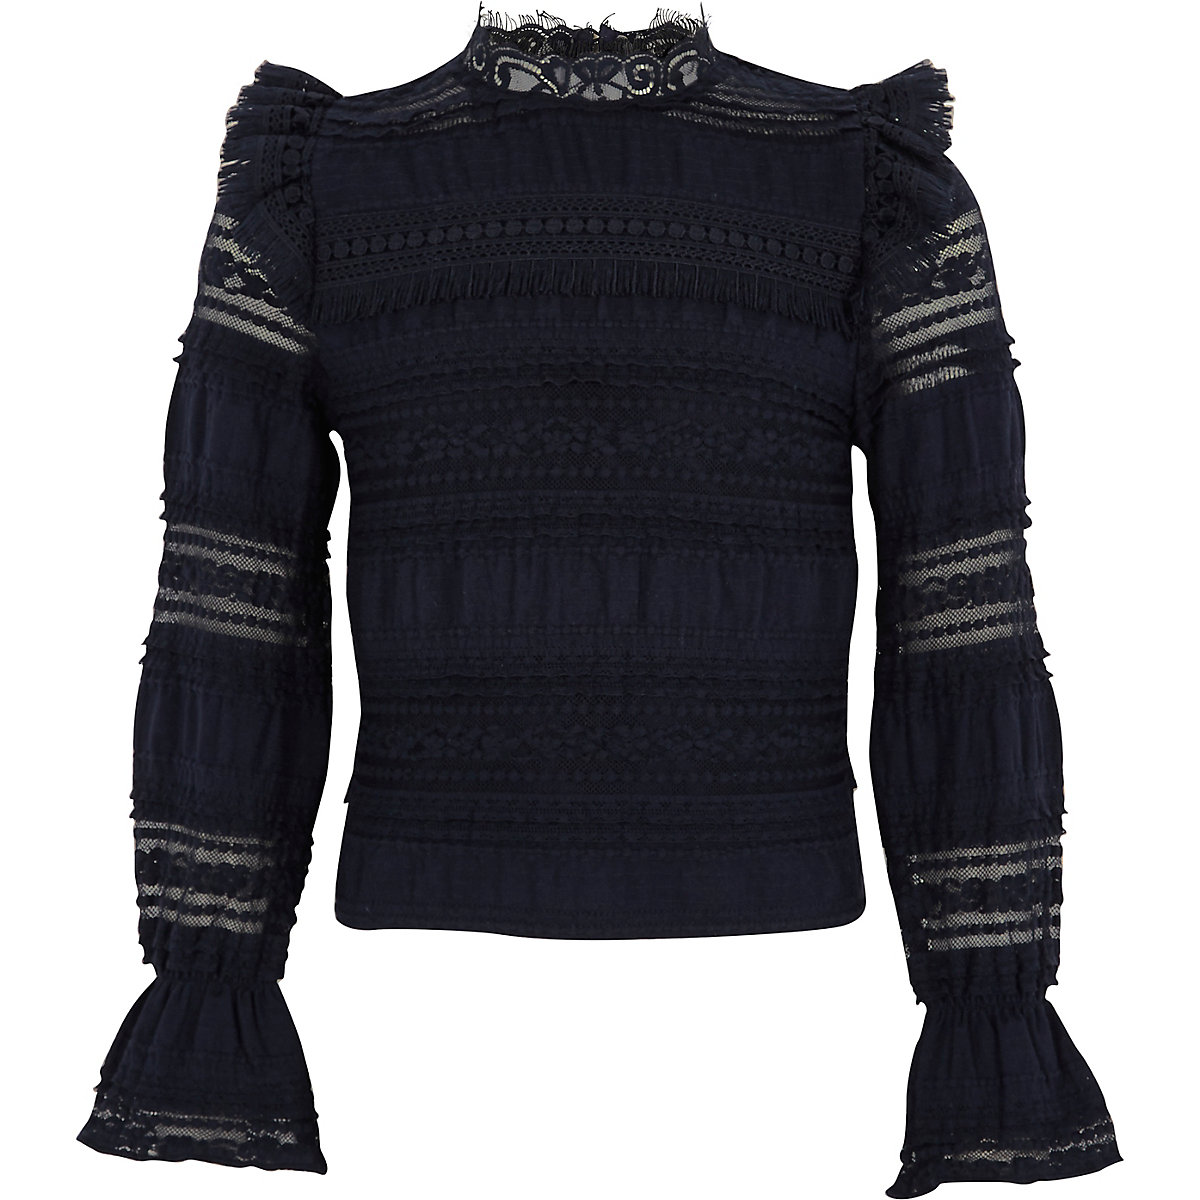 Girls navy lace fringed high neck top